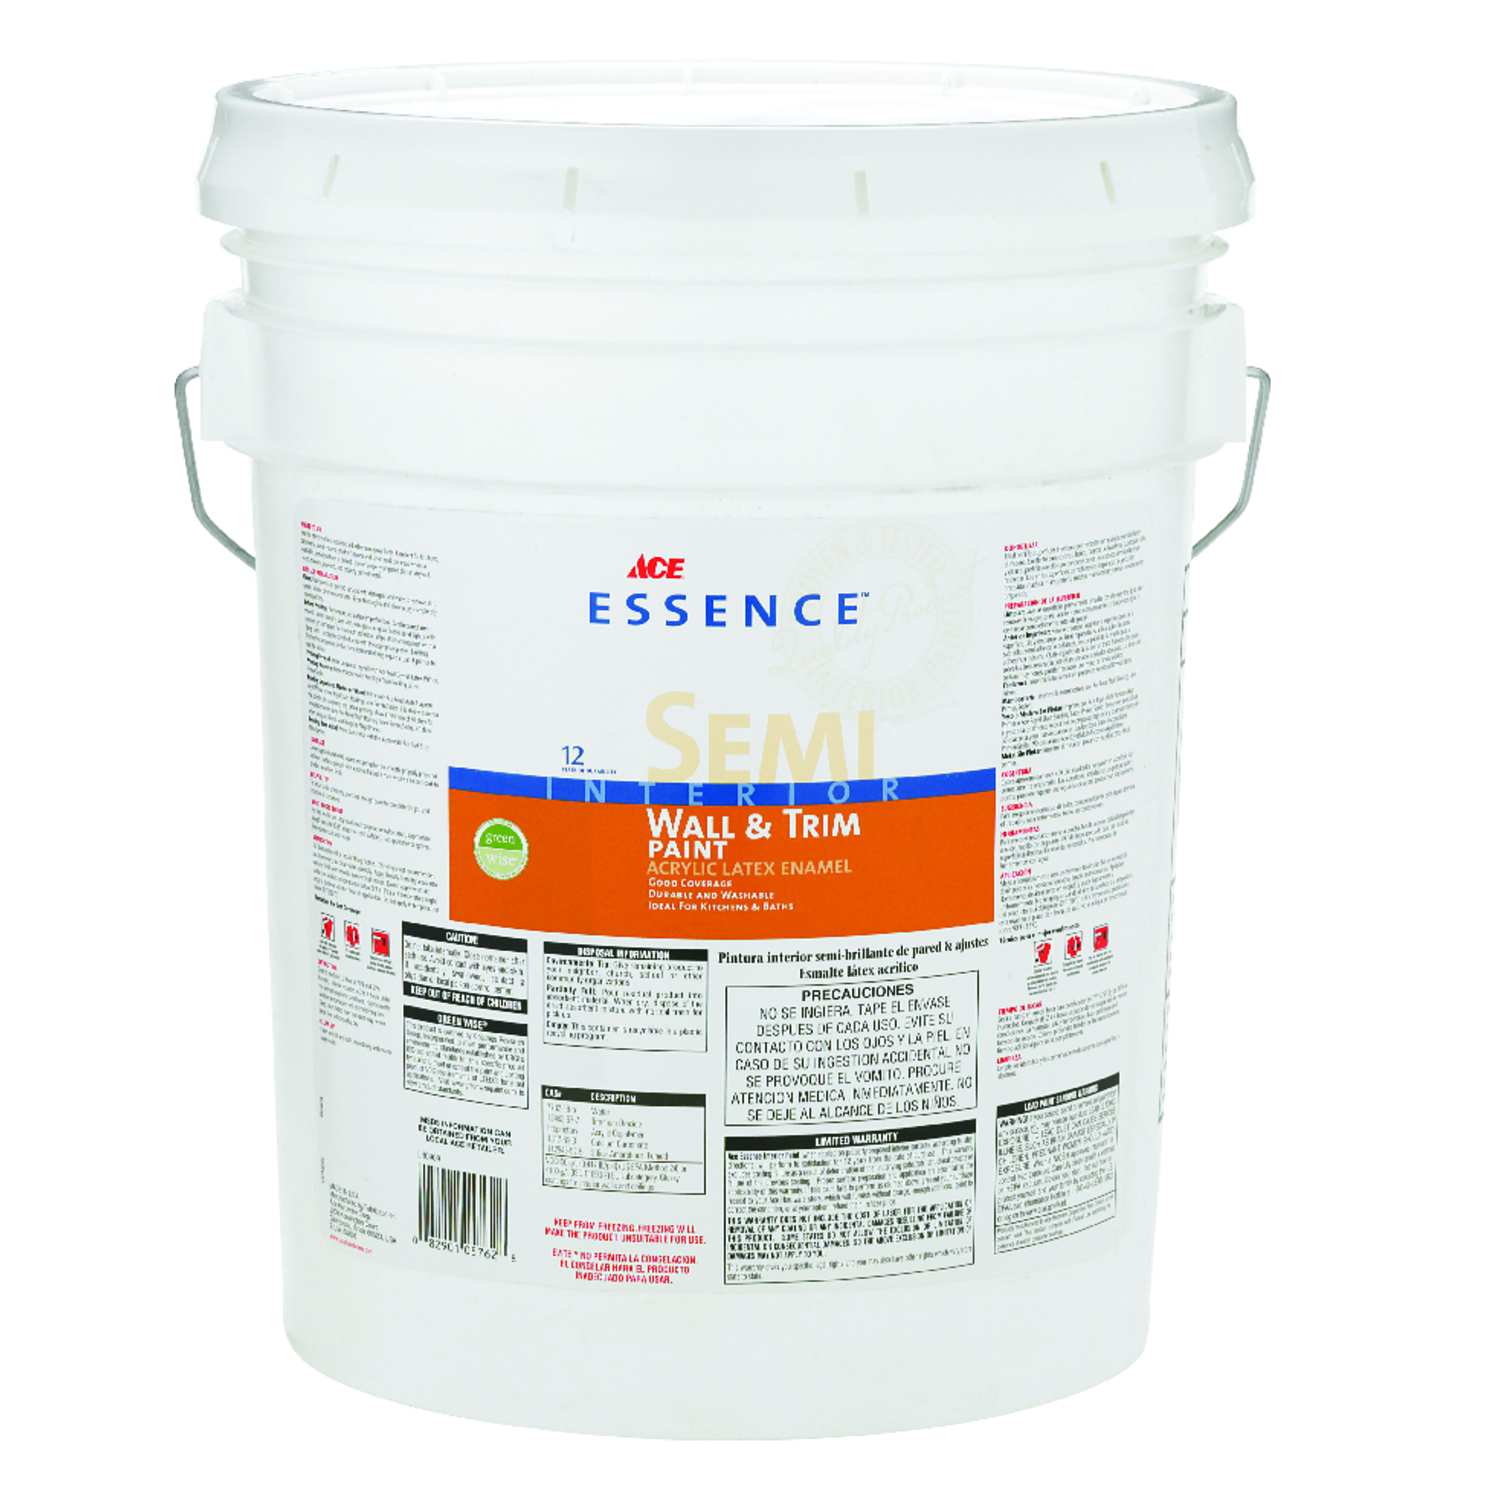 Ace  Essence  Semi-Gloss  High Hiding White  Acylic Latex  Interior Latex Wall+Trim Paint  5 gal.